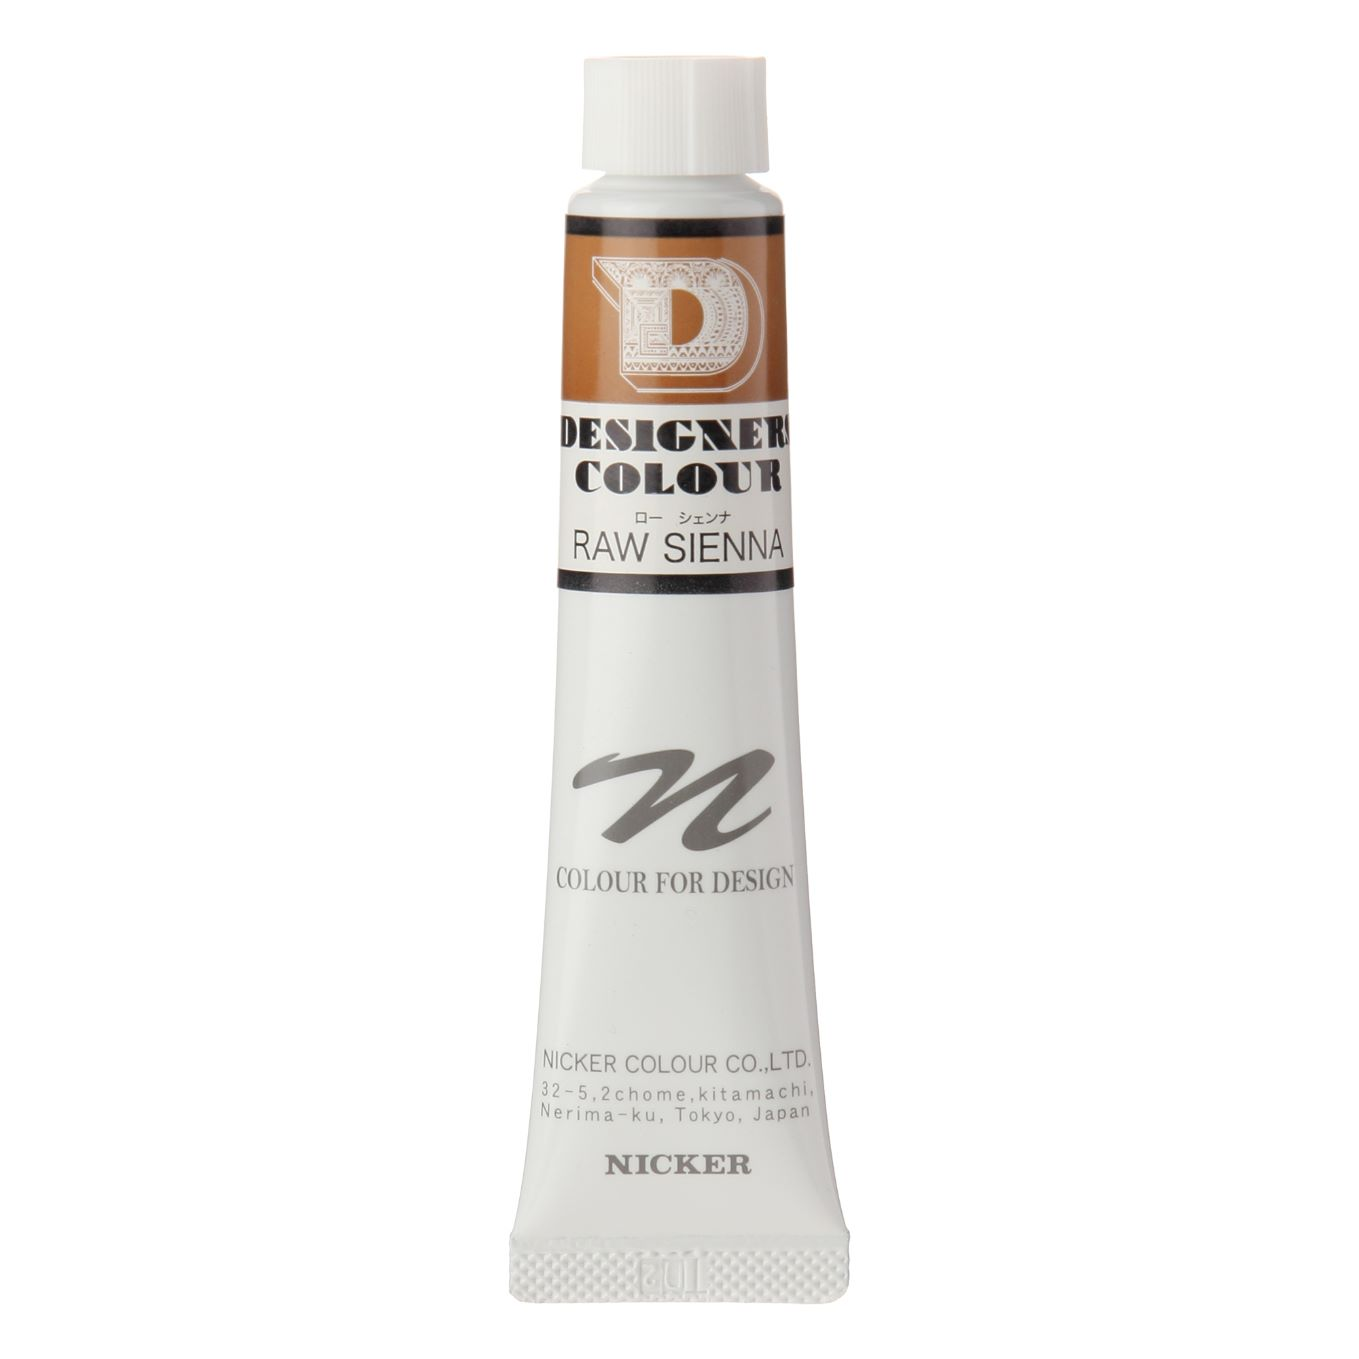 DESIGNERS COLOUR 20ml 593 RAW SIENNA